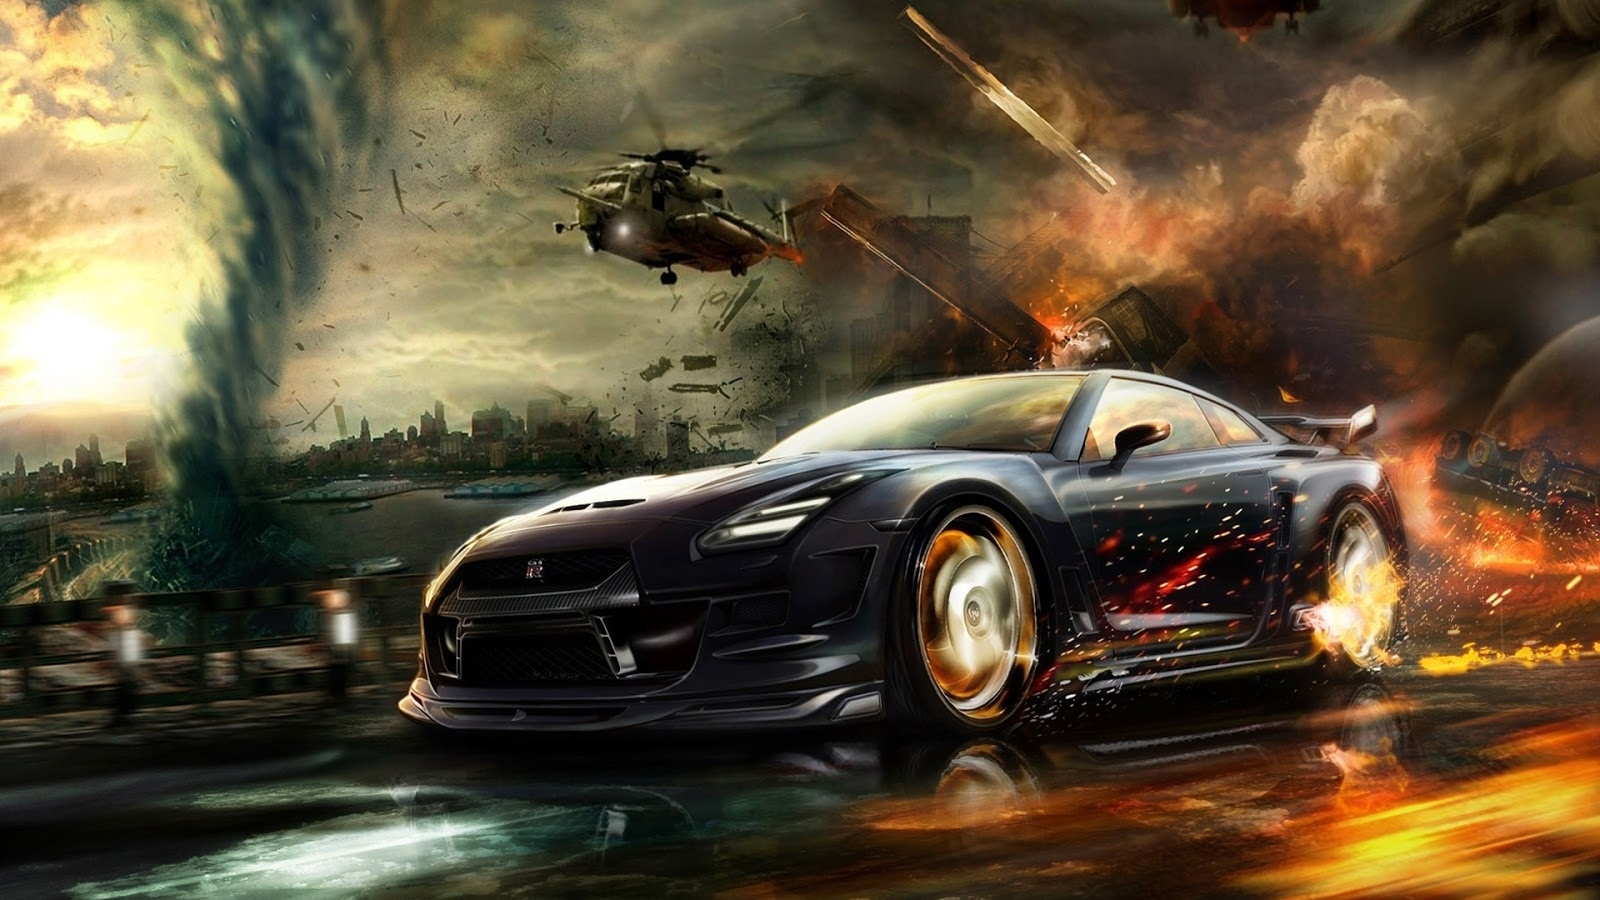 10 latest street race cars wallpapers full hd 1920×1080 for pc